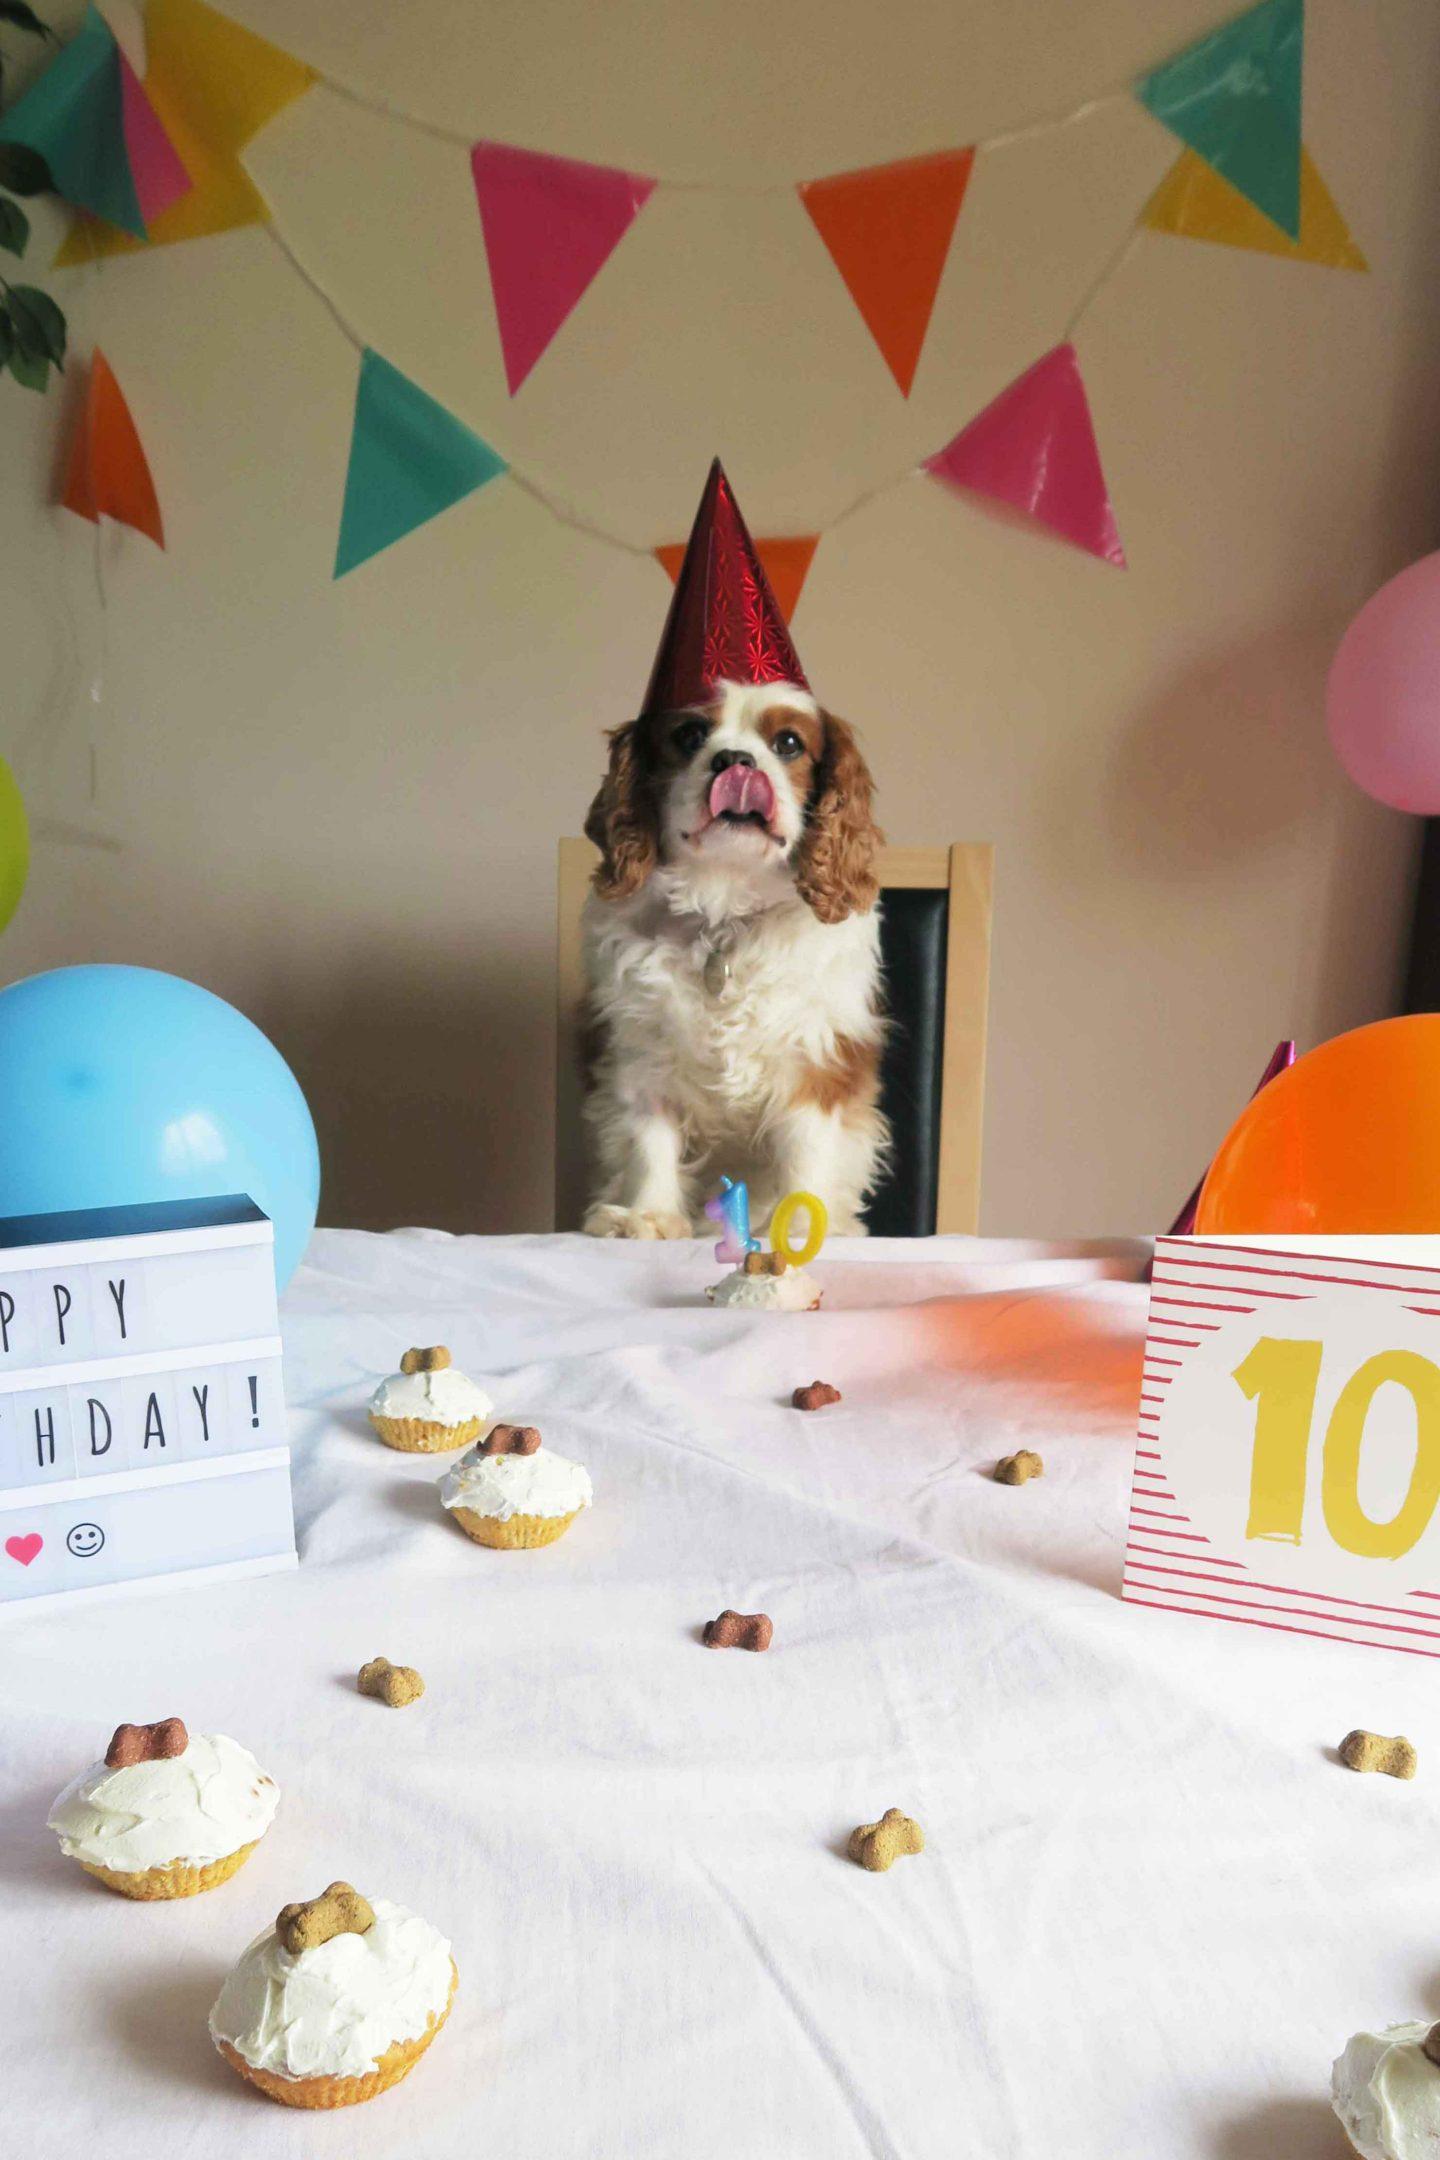 cavalier king charles spaniel wearing party hat